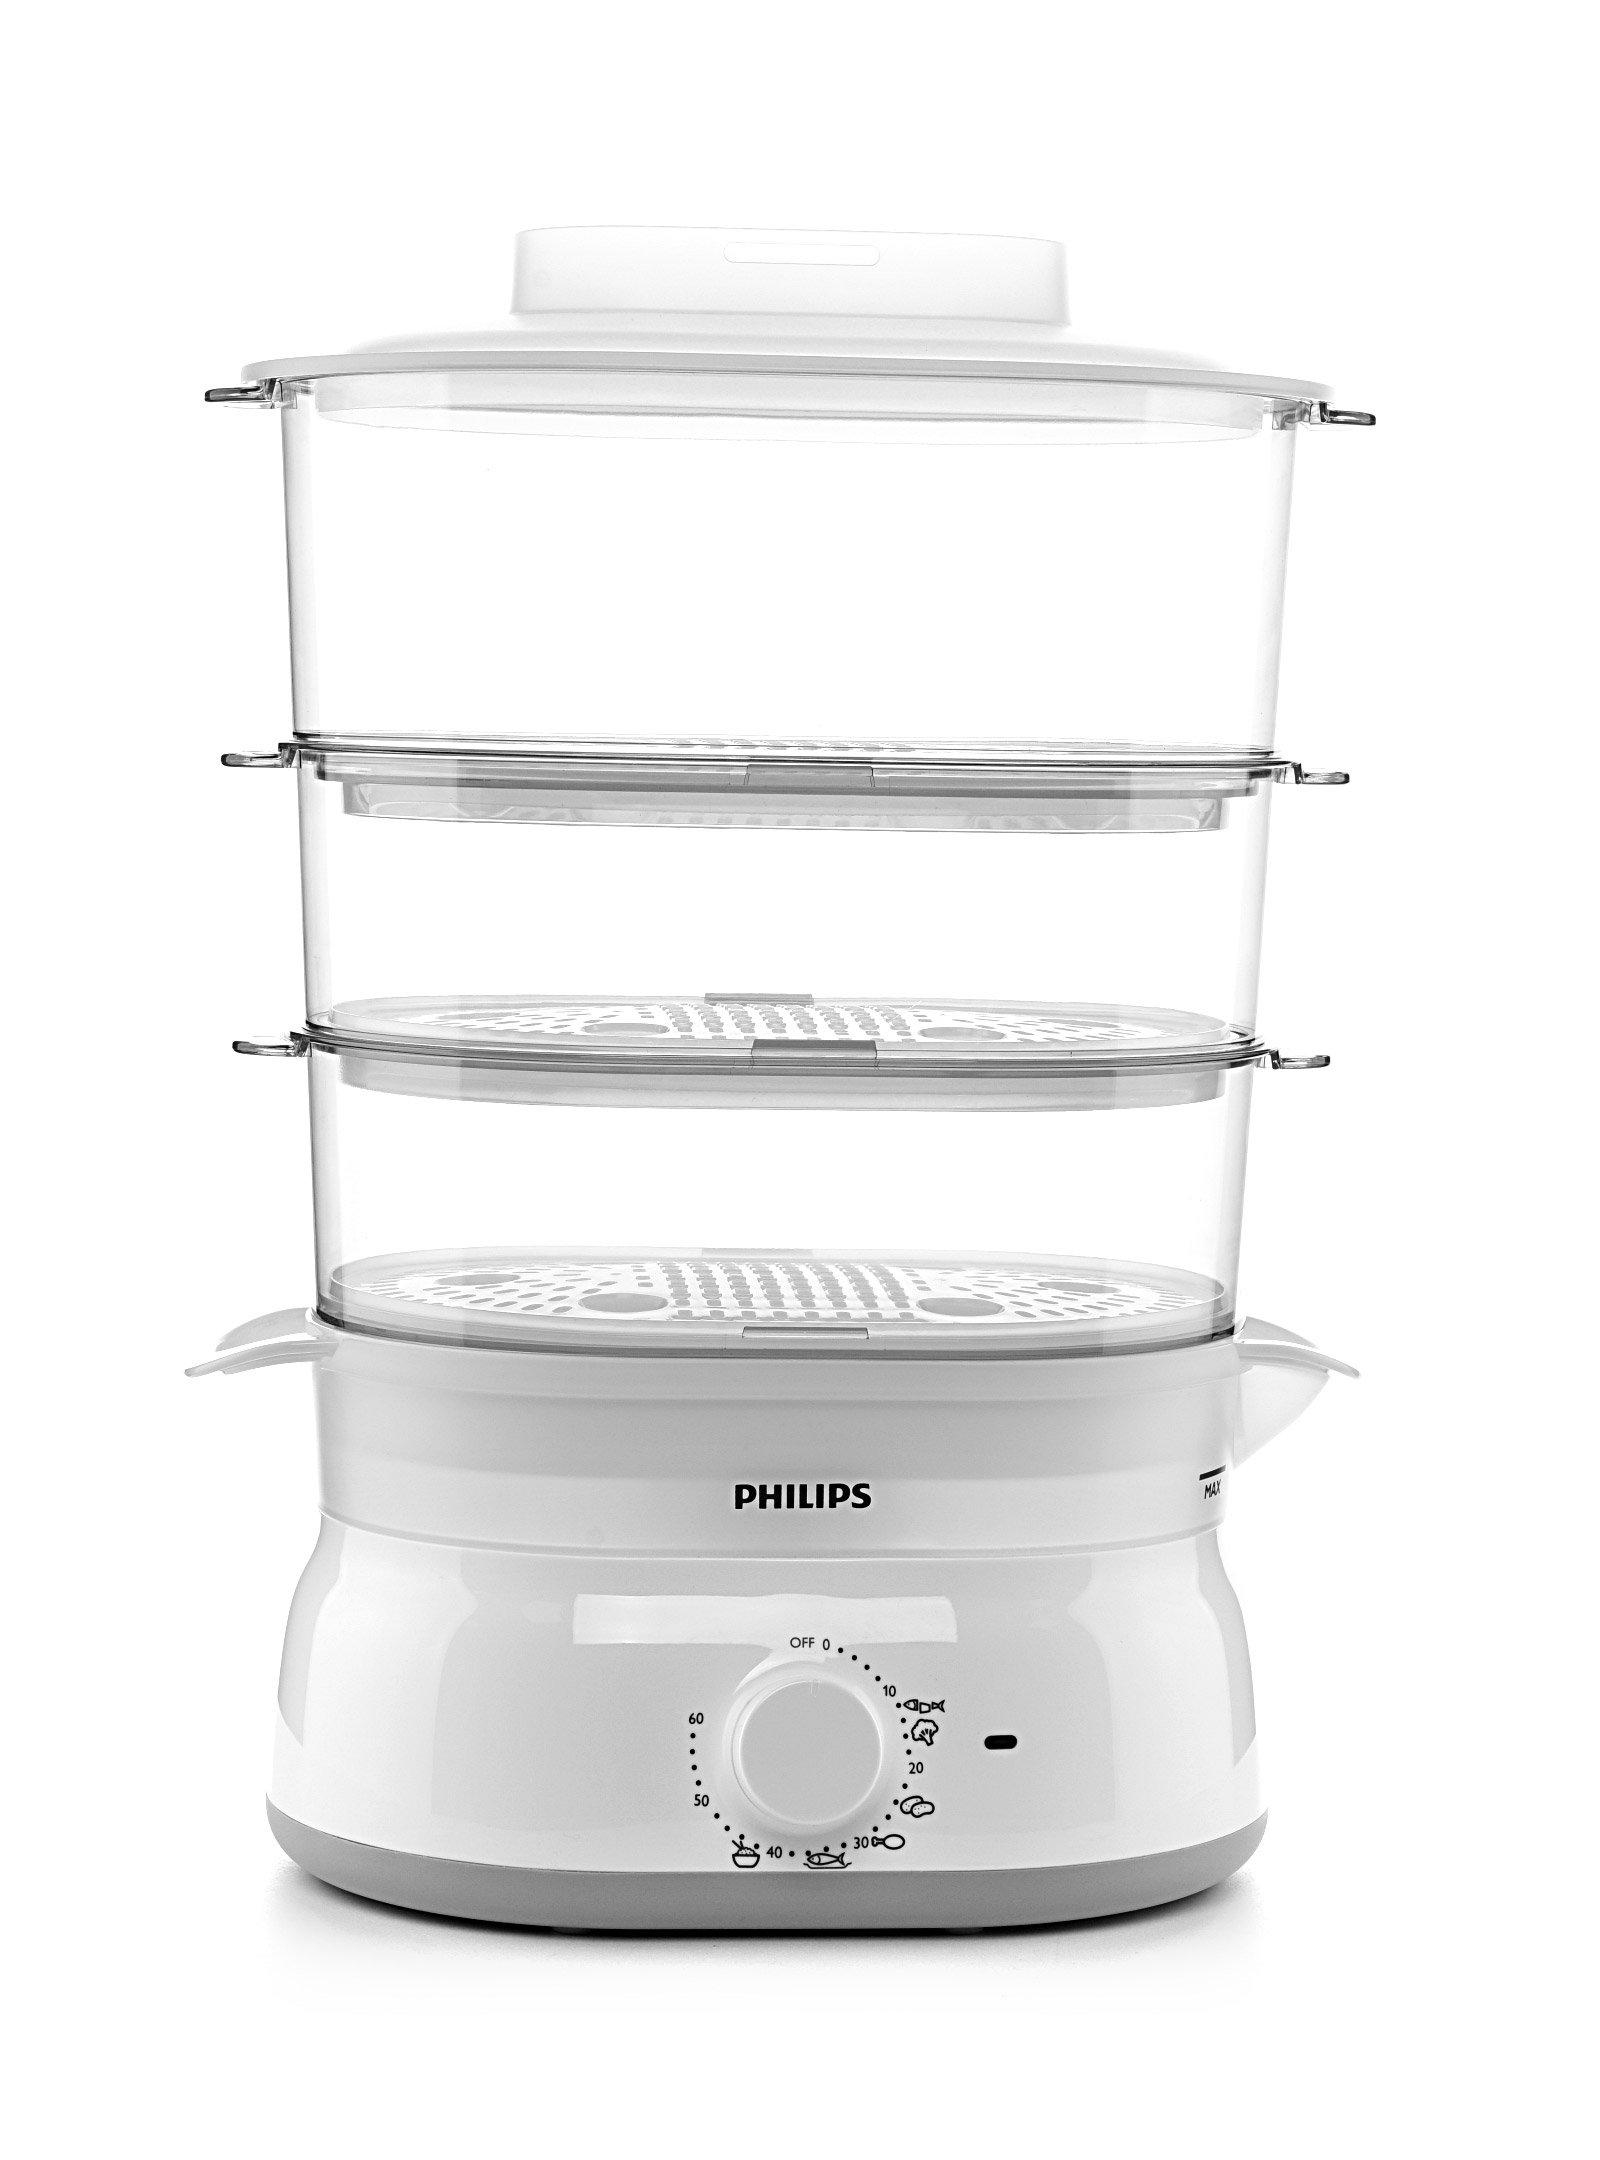 Philips Daily Collection 3Layer 9.0L Food Steamer